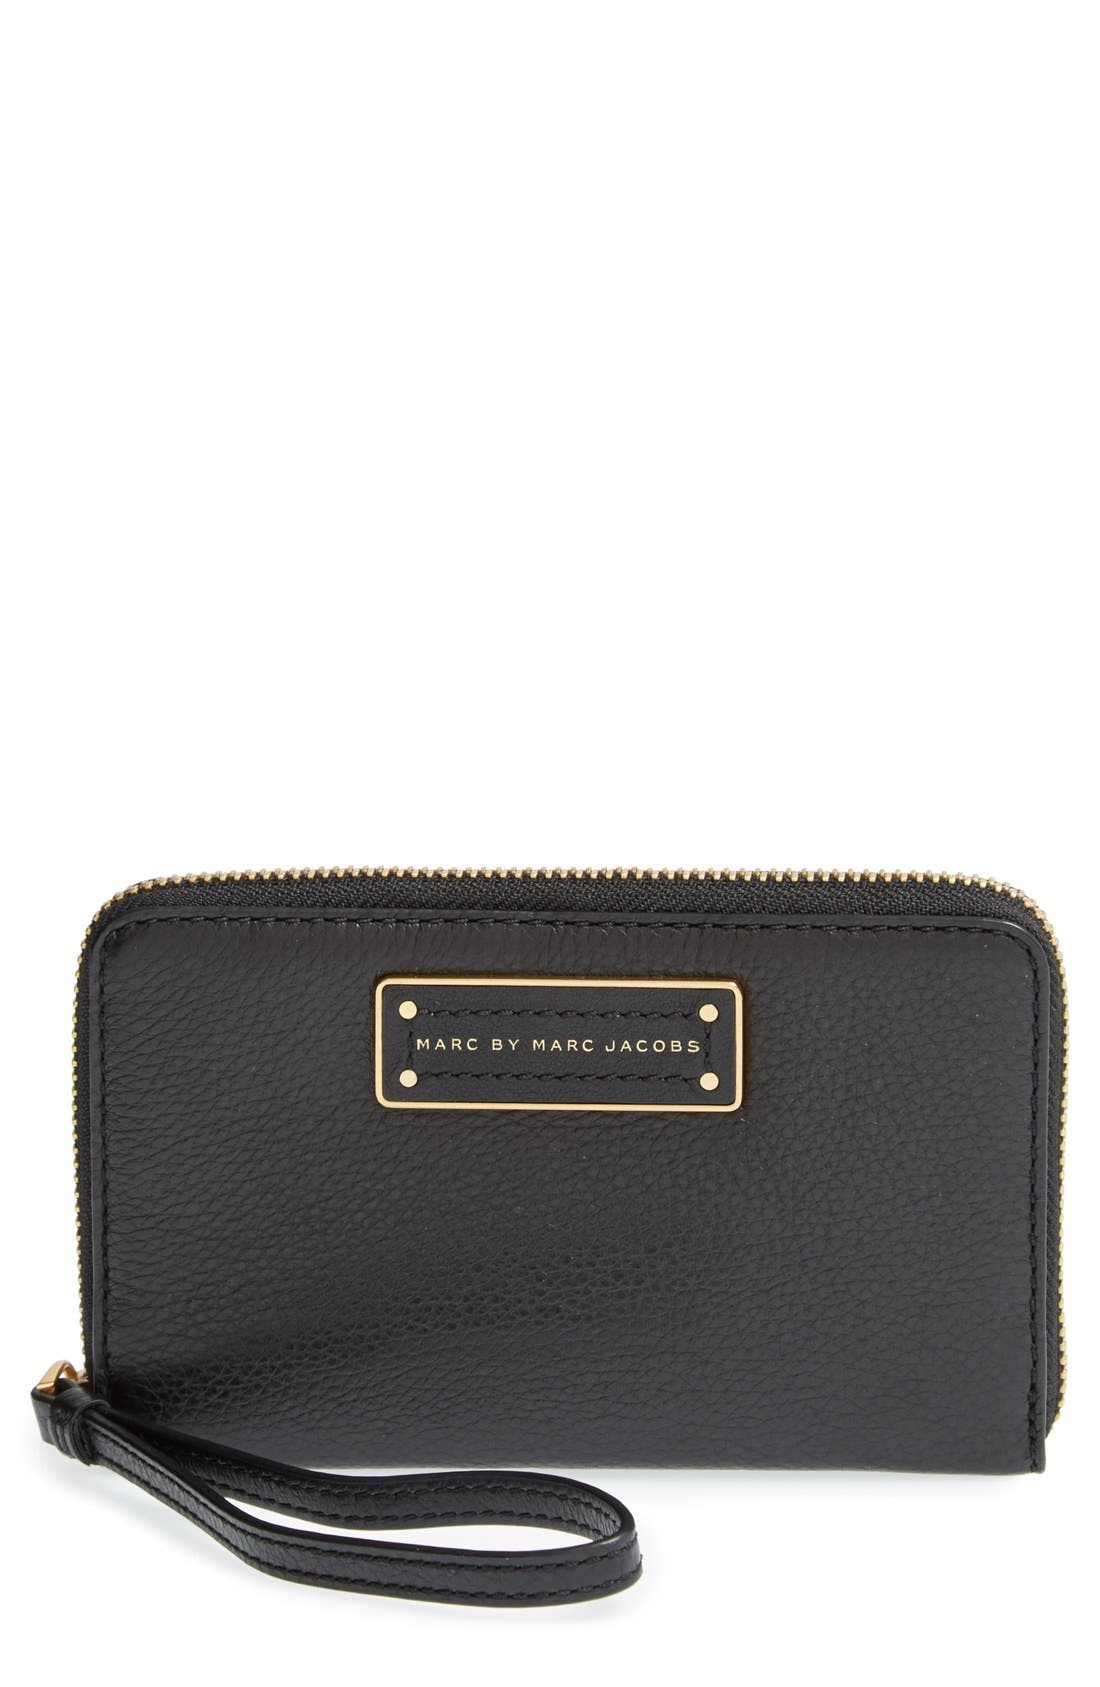 Main Image - MARC BY MARC JACOBS 'Too Hot To Handle - Wingman' Wallet Wristlet